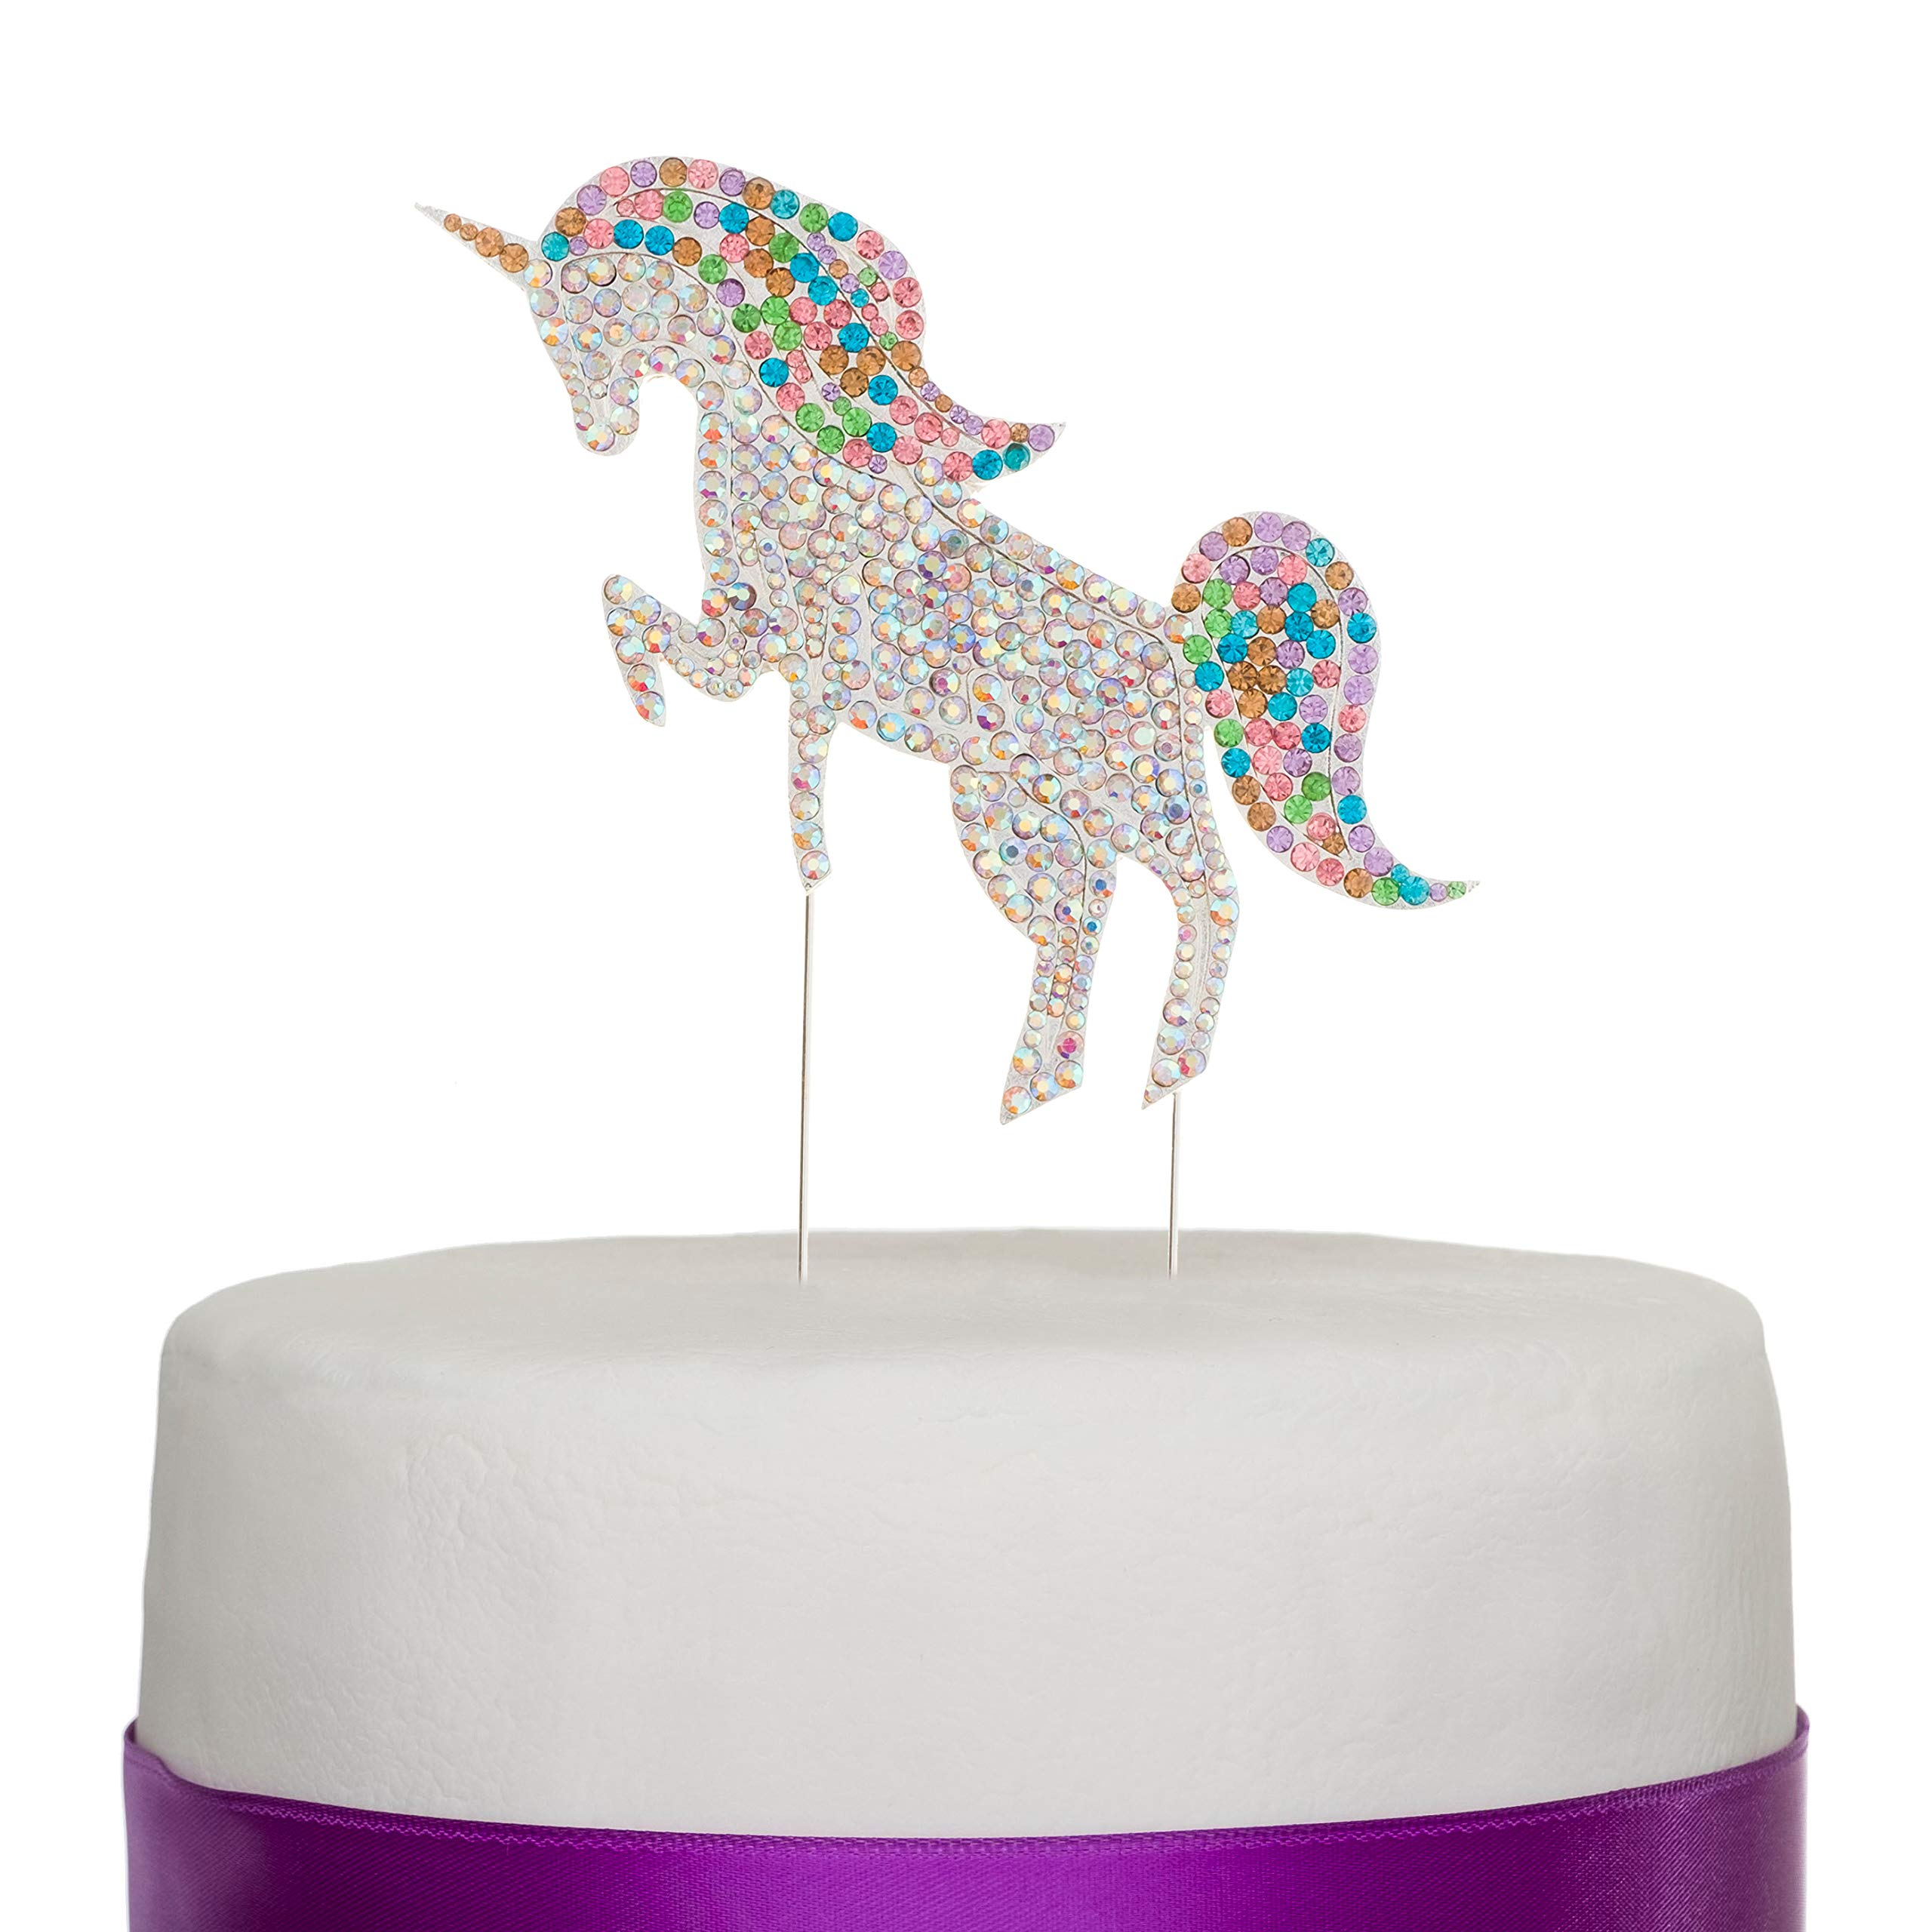 Ella Celebration Unicorn Birthday Cake Topper Unique Reusable Rainbow Rhinestone Cake Decorations for Party, Baby Shower, Event Supplies and Favors (Multicolor)